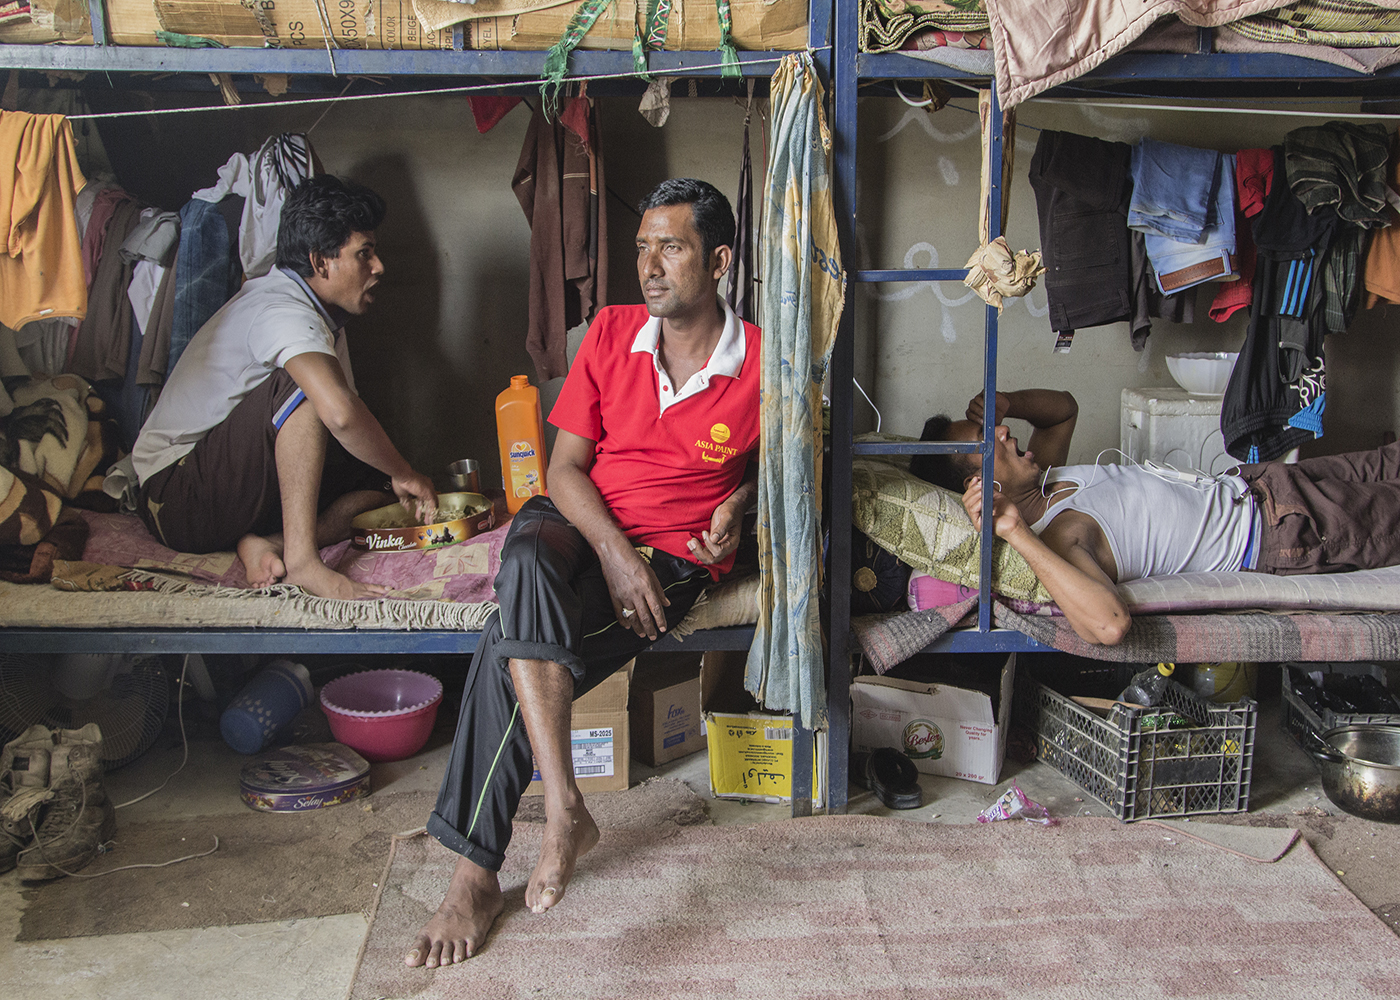 10/10/2014 -- Kirkuk, Iraq -- A portrait of Bangladeshi worker in his bedroom in the afternoon when they have 2 hours rest.